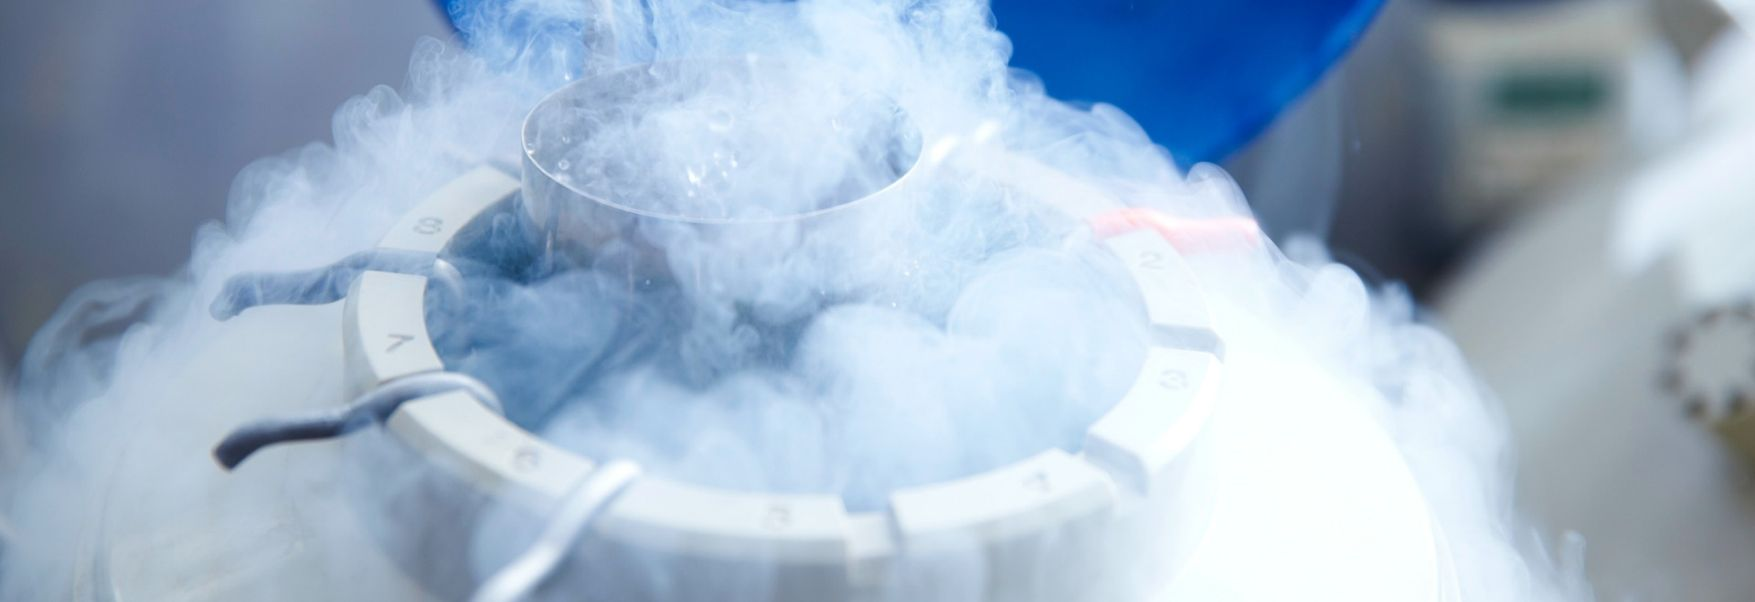 The Dream of Cryopreservation - OpenMind